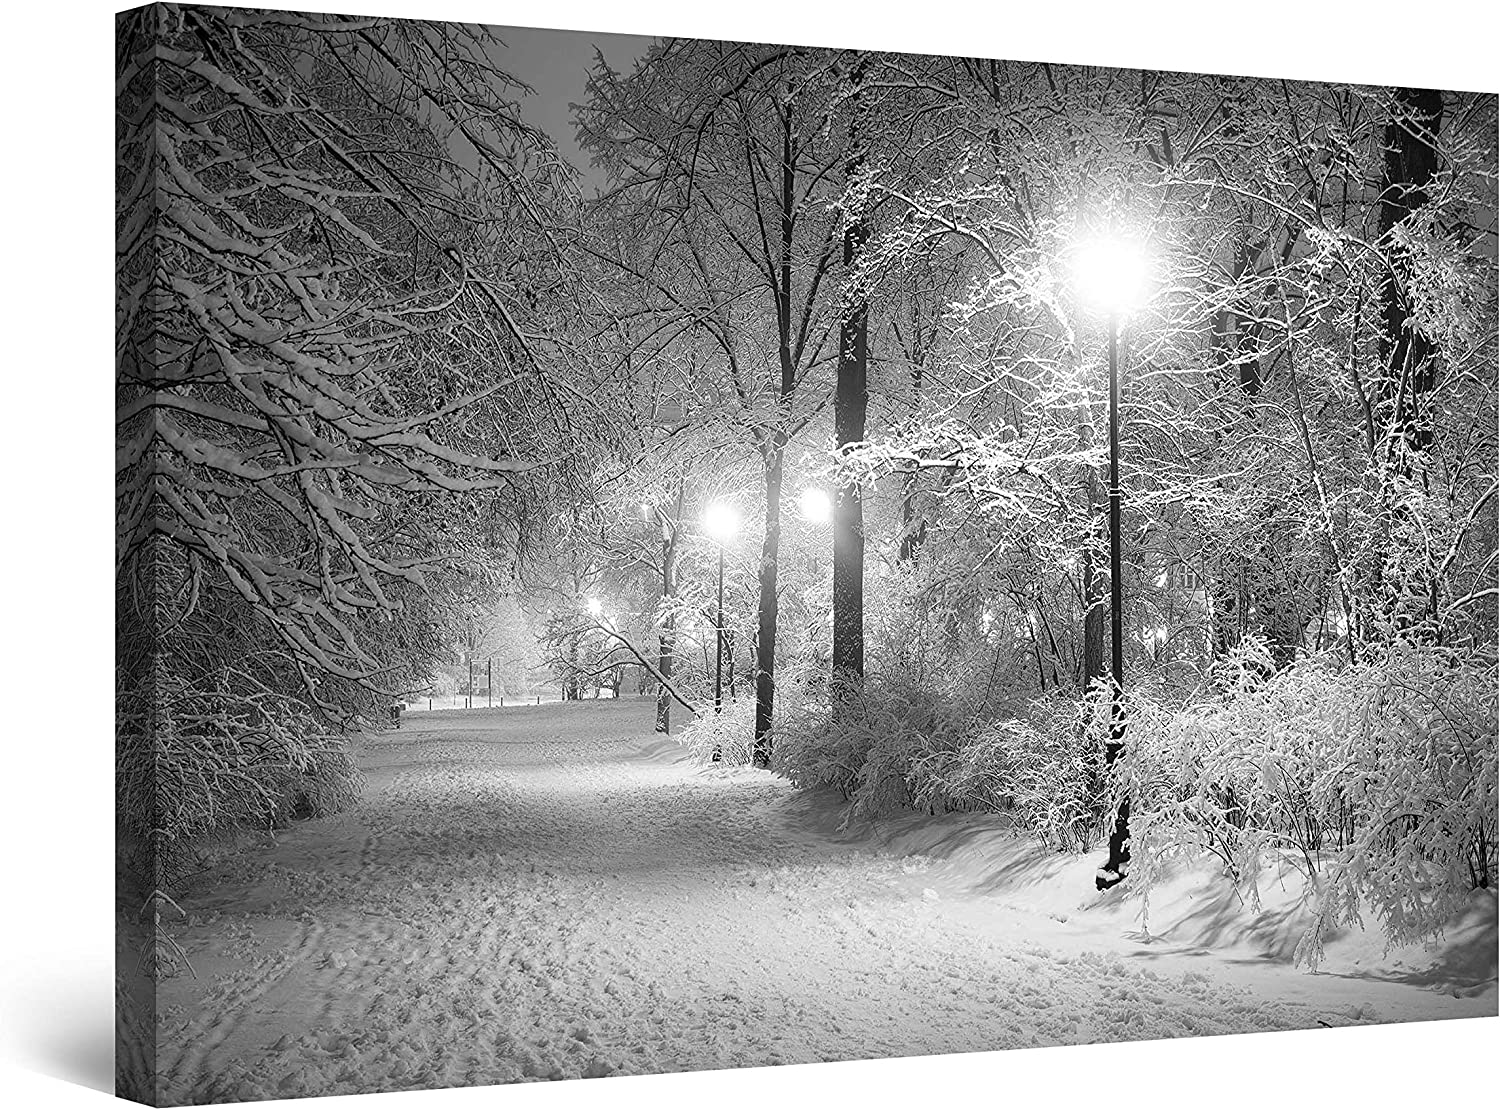 Startonight Canvas Wall Art Black and White Abstract Winter Park Landscape, Framed Quantic Home Decor for Living Room 32